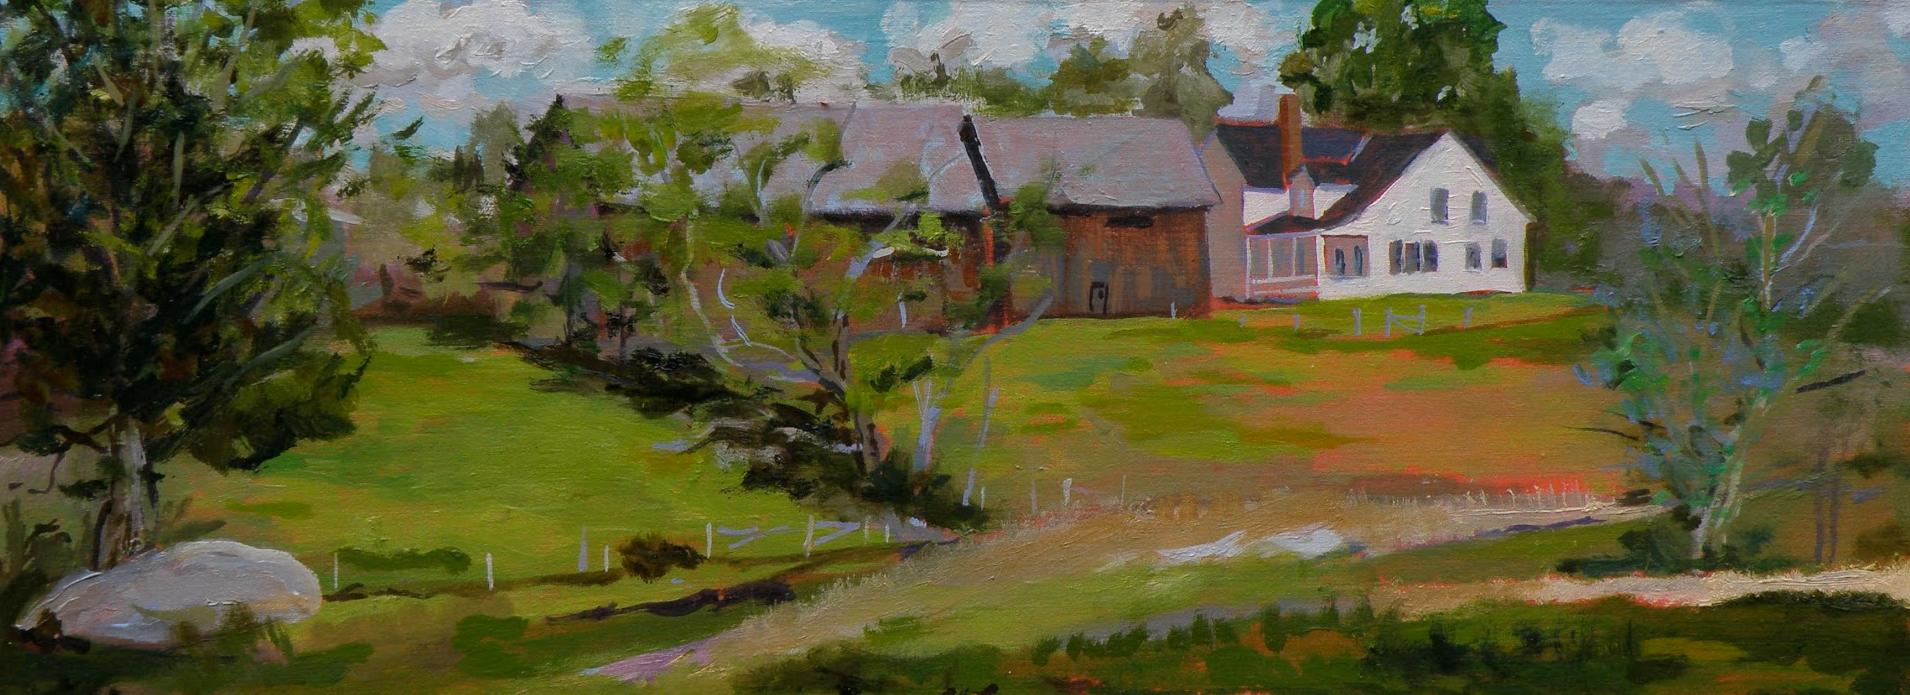 Perkins Hill Road, Weathersfield, Vermont; oil on panel